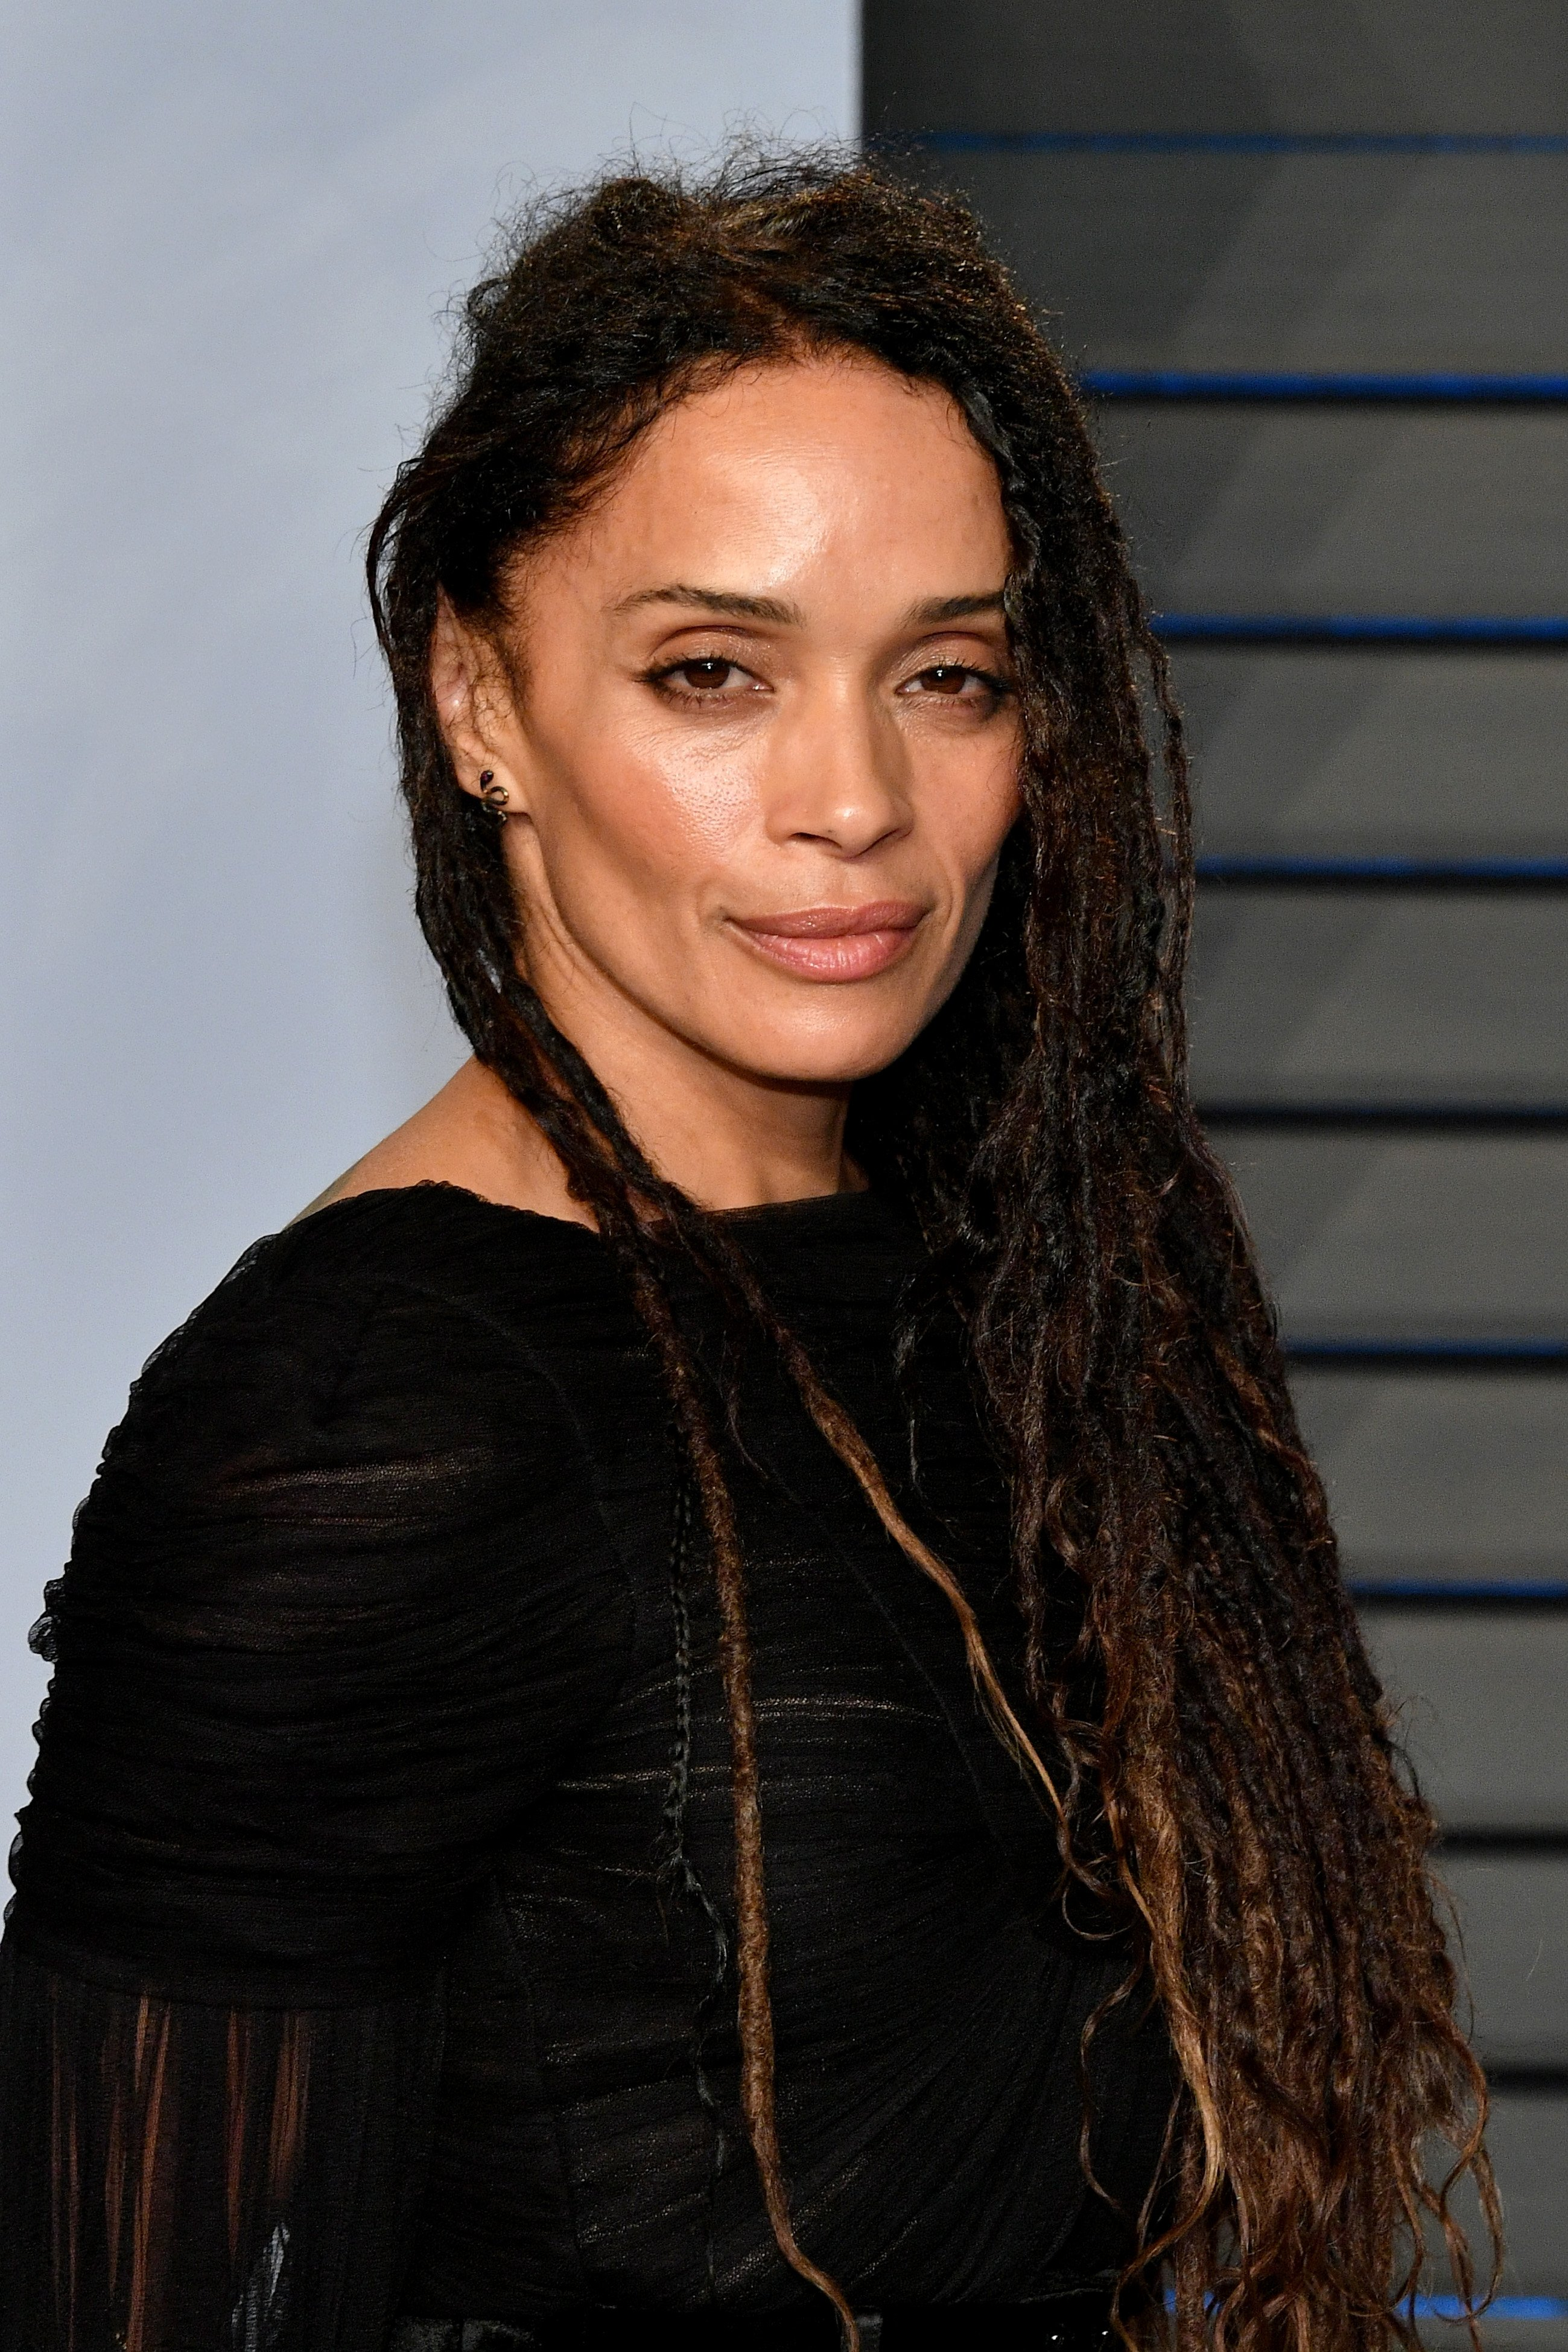 Lisa Bonet attends the 2018 Vanity Fair Oscar Party hosted by Radhika Jones at Wallis Annenberg Center for the Performing Arts on March 4, 2018 | Photo: GettyImages